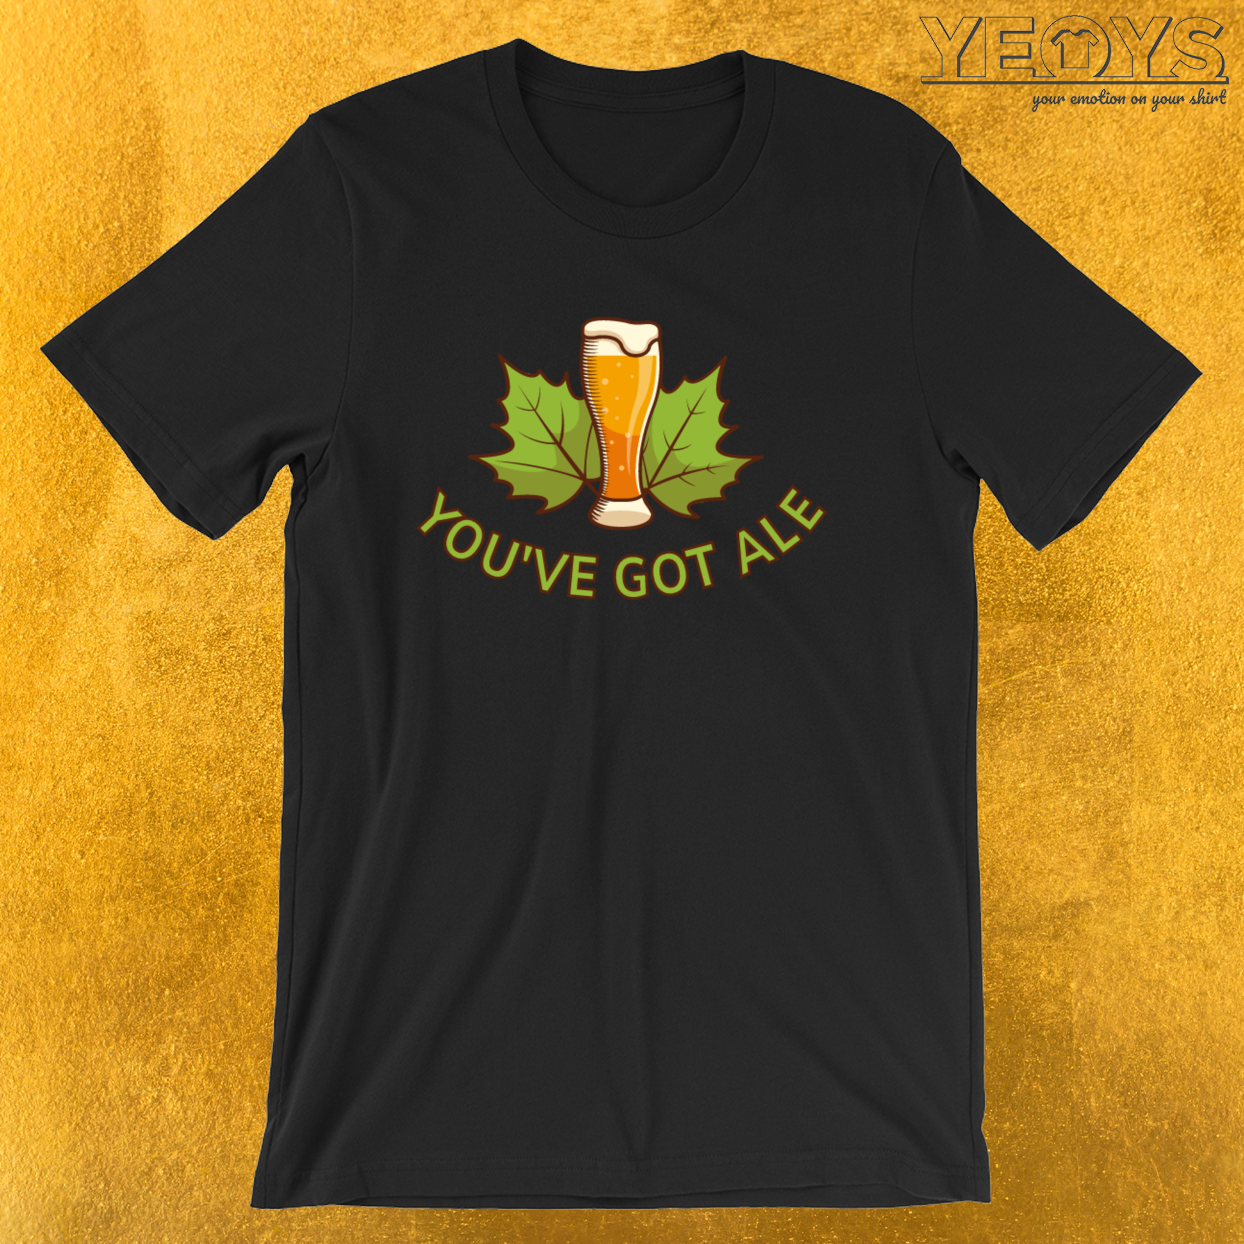 You've Got Ale – Pale Ale Tee